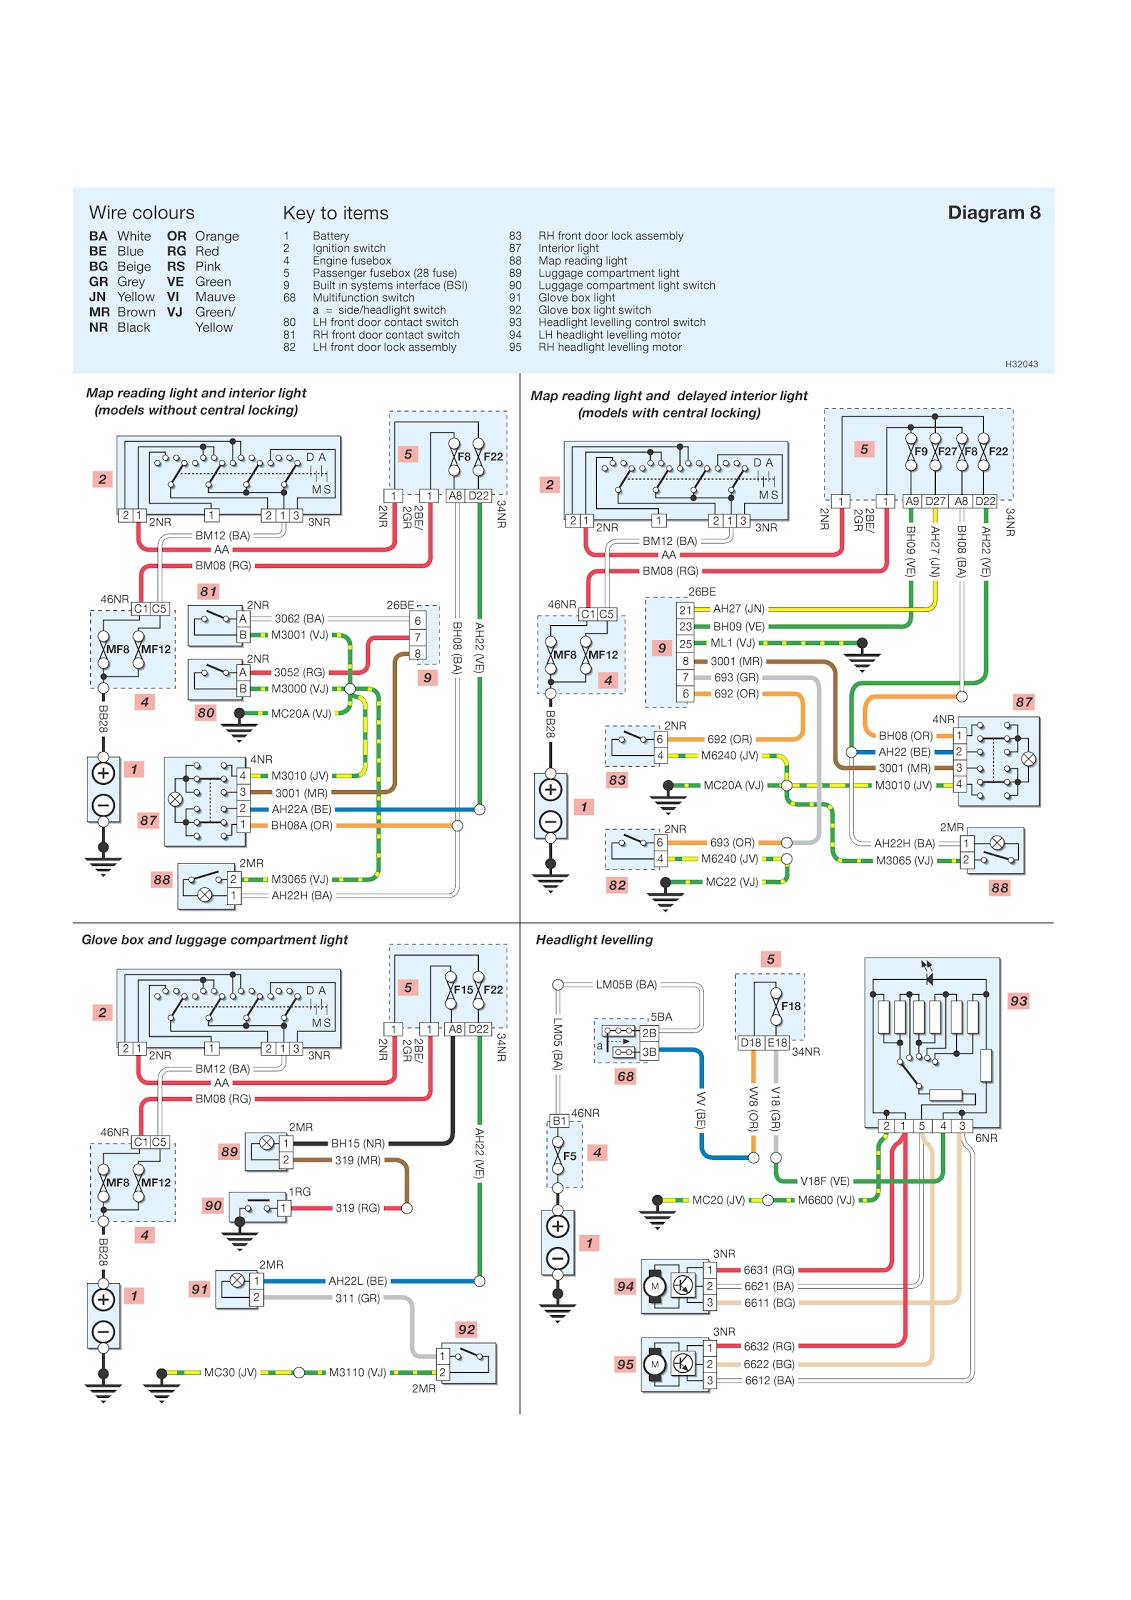 peugeot 206 headlight wiring diagram peugeot 206 ecu wiring diagram